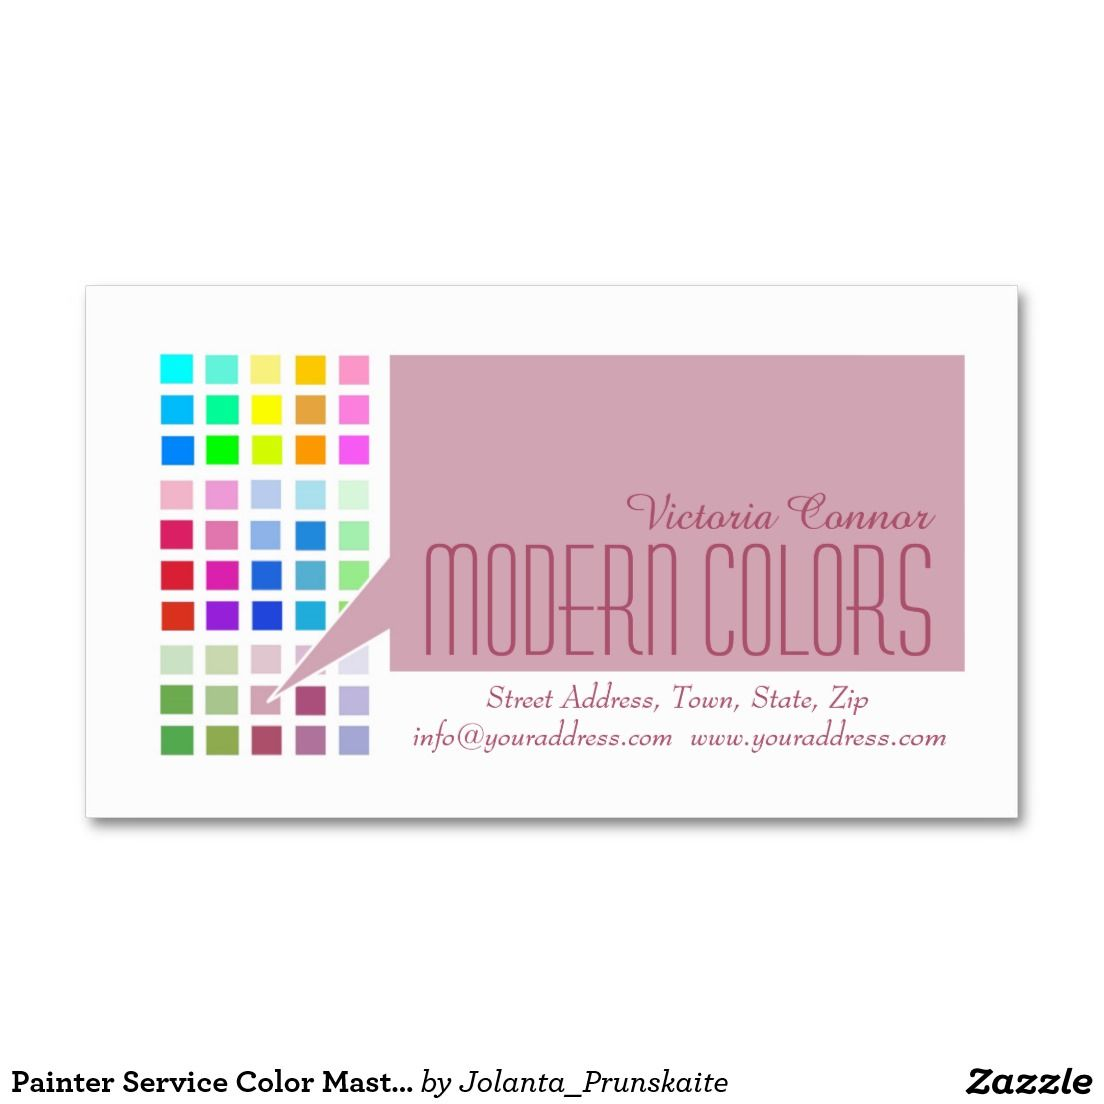 Painter Service Color Master Business Card   Business cards and Business